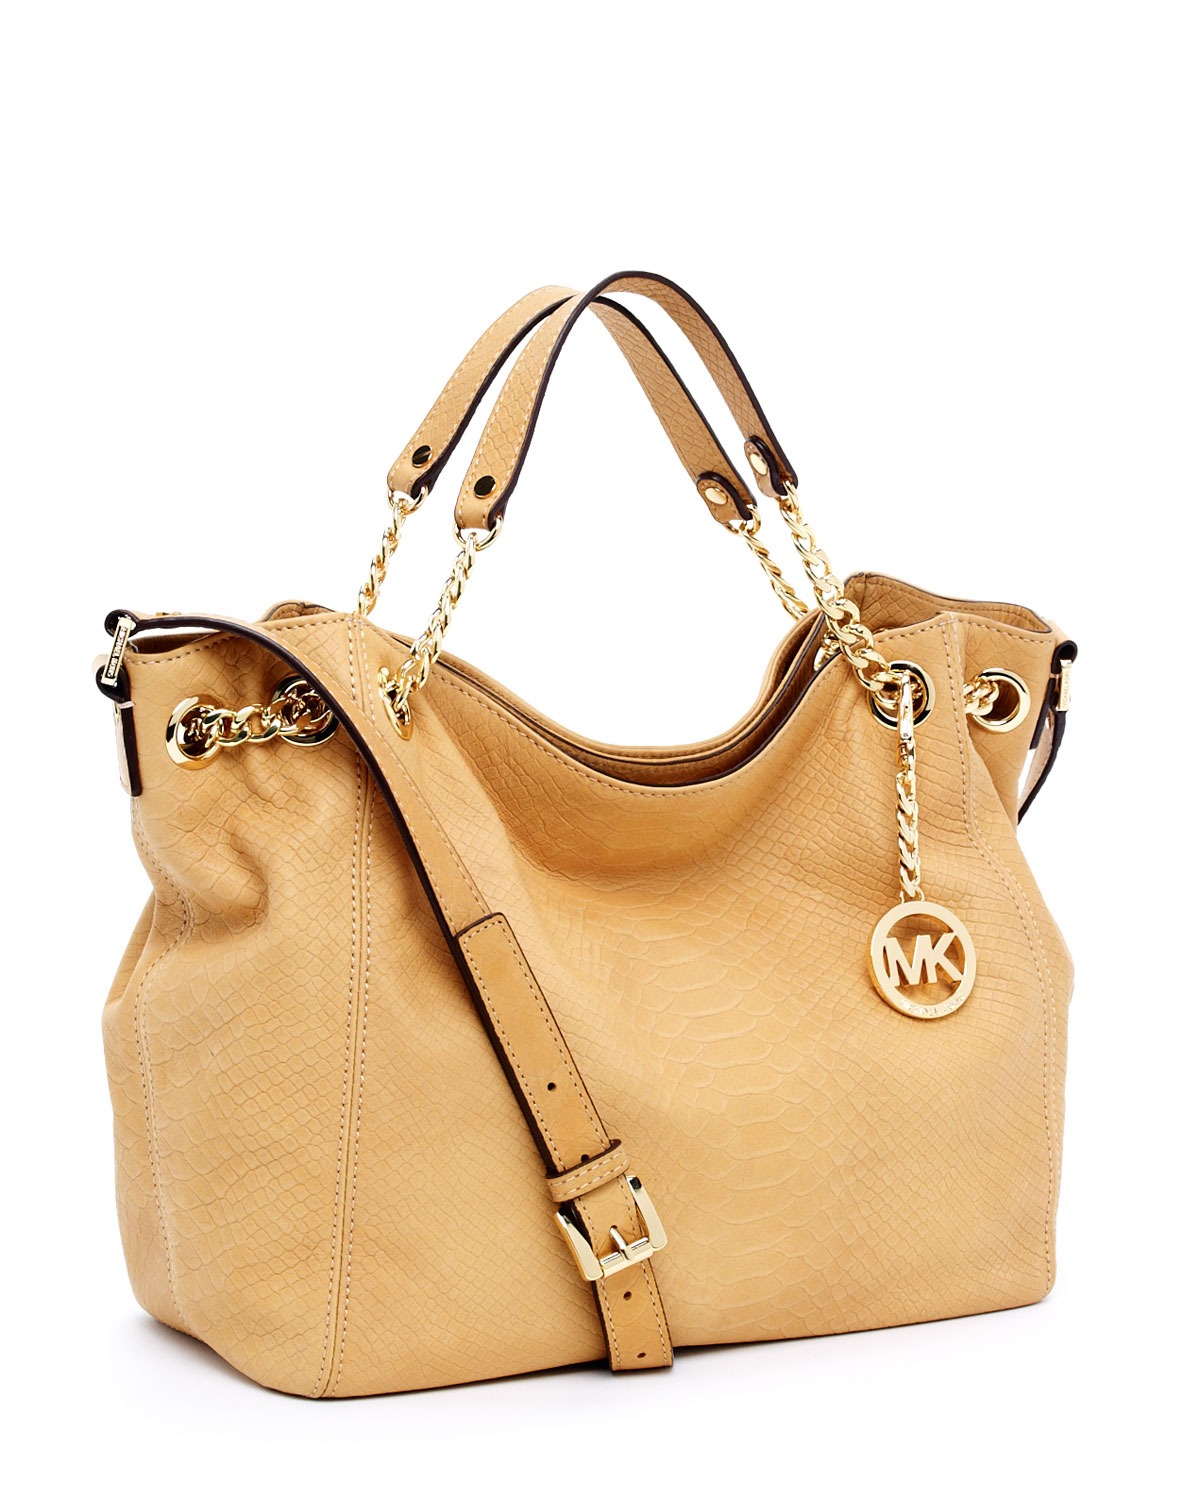 New Style Lyst Michael Kors Jet Set Chain Medium Gather Shoulder Tote Tan E592b 6f6b4